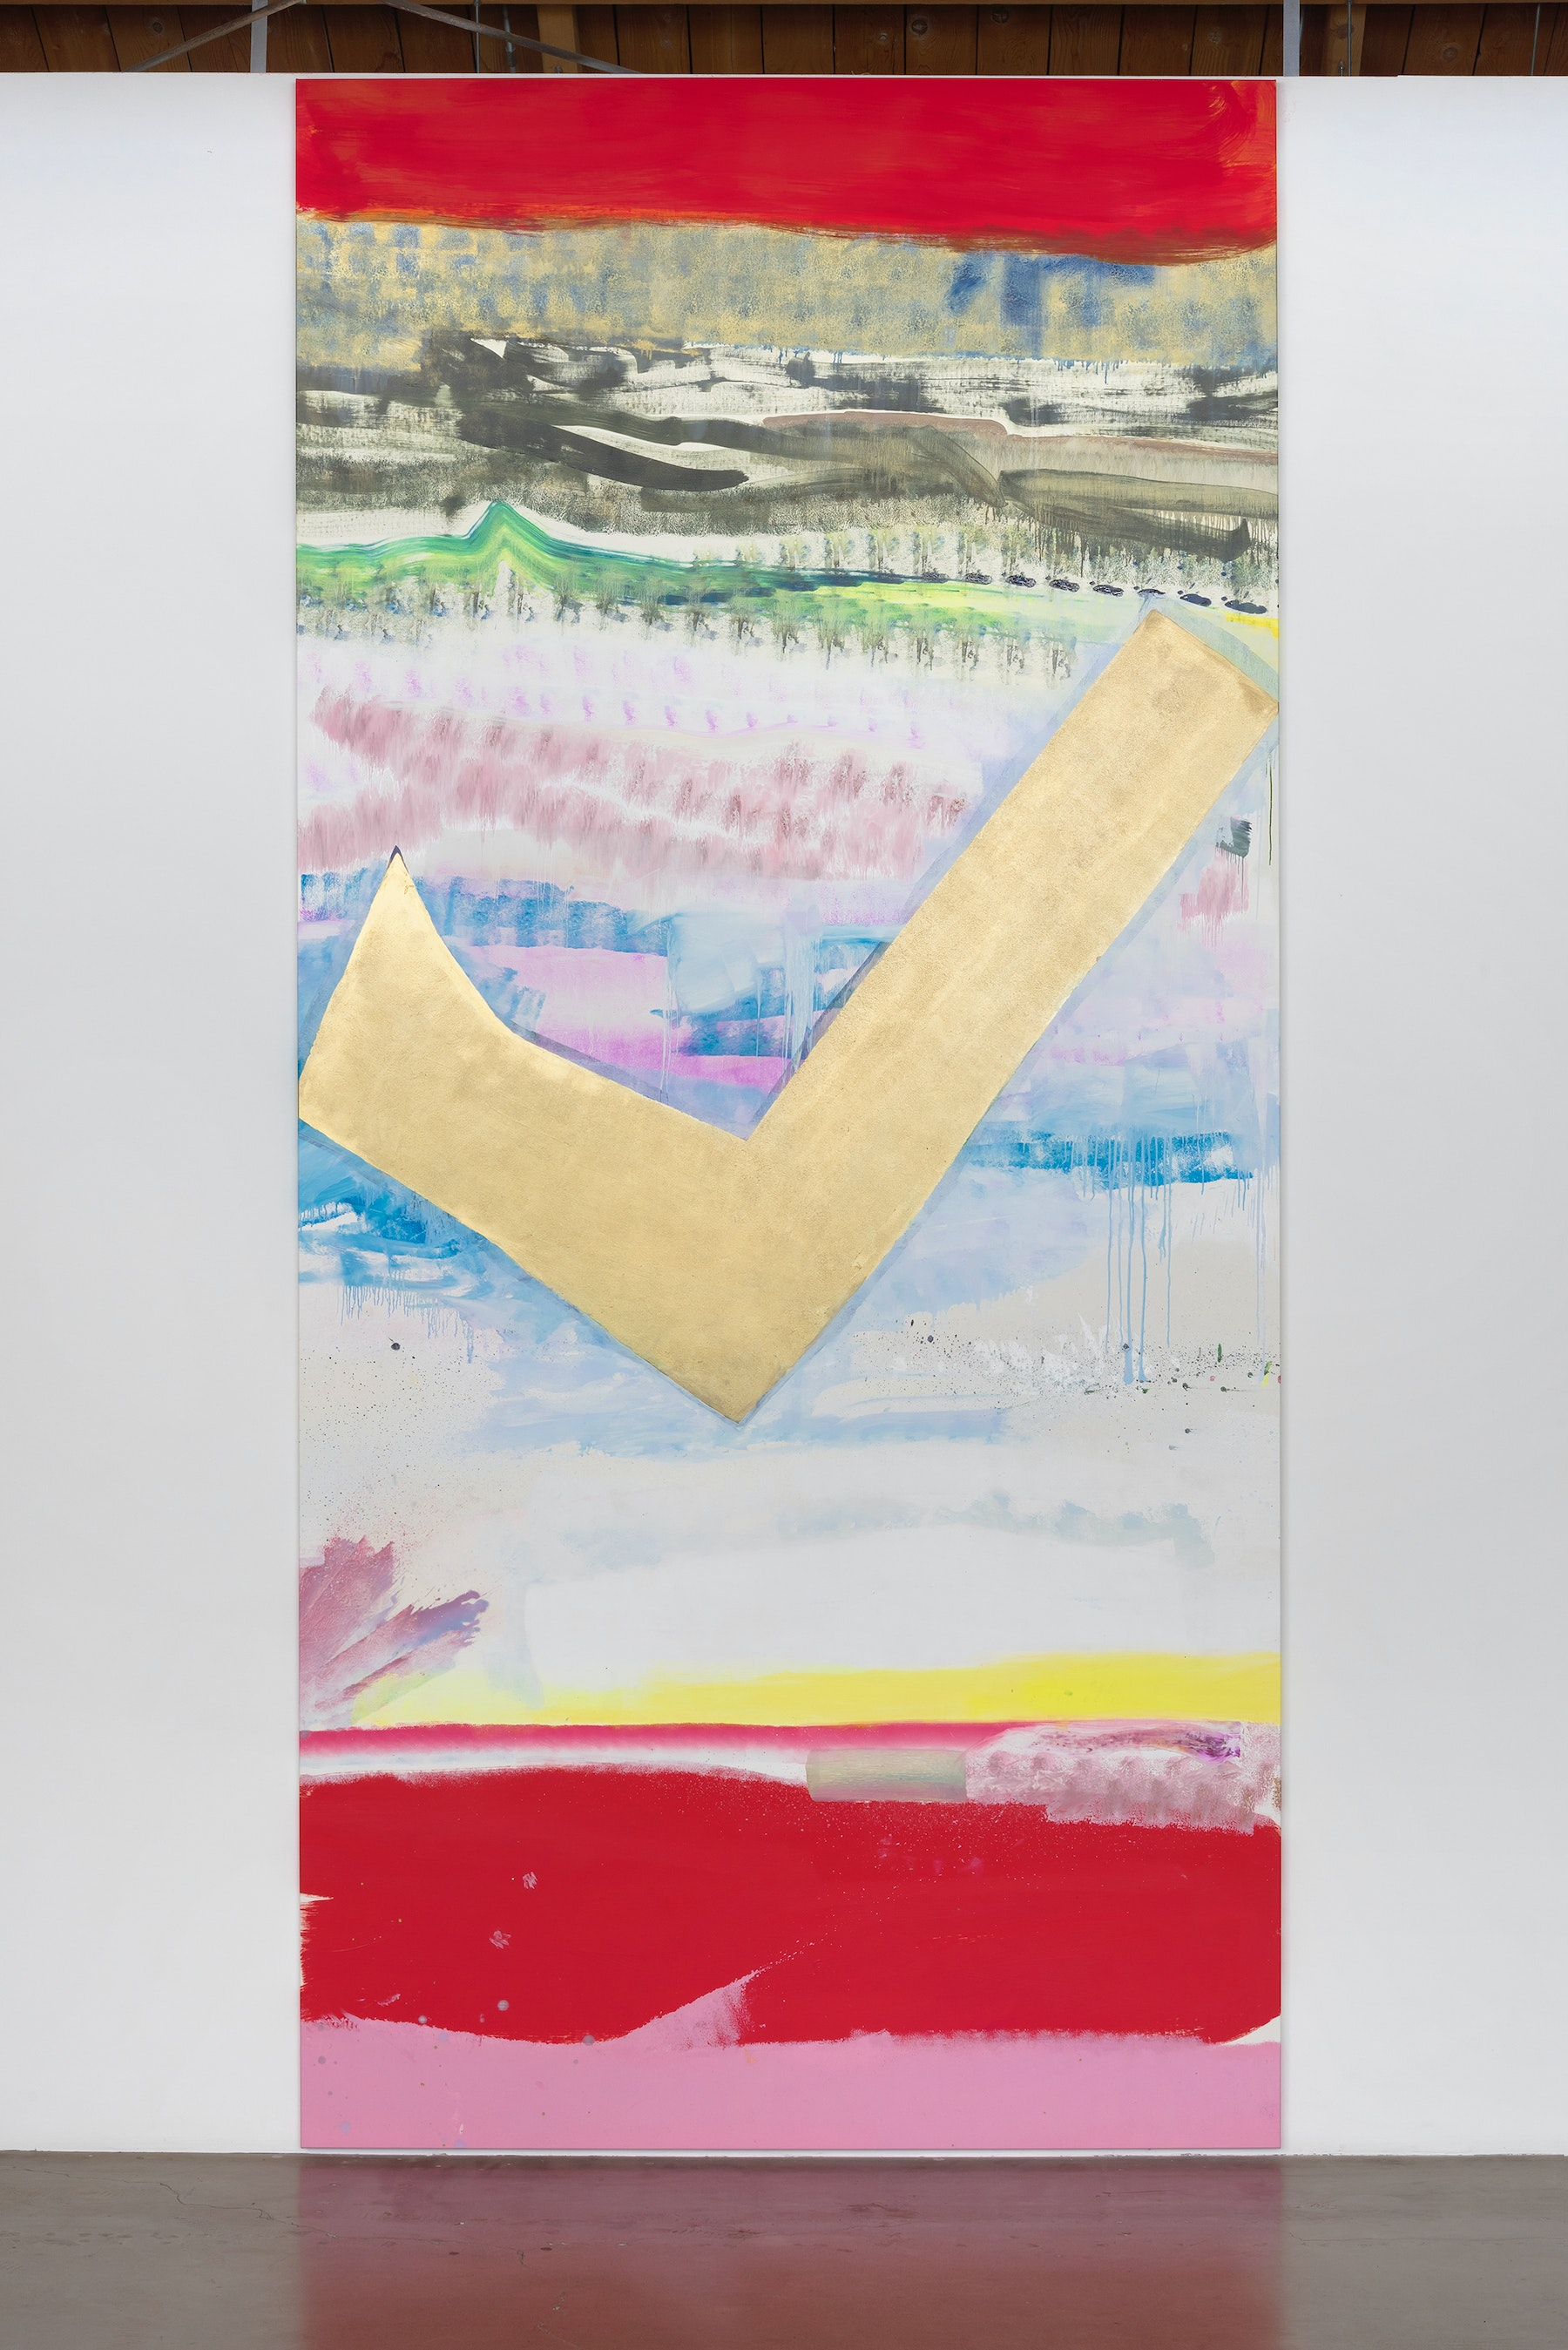 """Monique Van Genderen """"Untitled,"""" 2017 Oil and pigment on linen 13' 9"""" x 78"""" x 1 ¹⁄₄"""" [HxWxD] (419.1 x 198.12 x 3.18 cm) Inventory #VGE333 Courtesy of the artist and Vielmetter Los Angeles Photo credit: Robert Wedemeyer"""